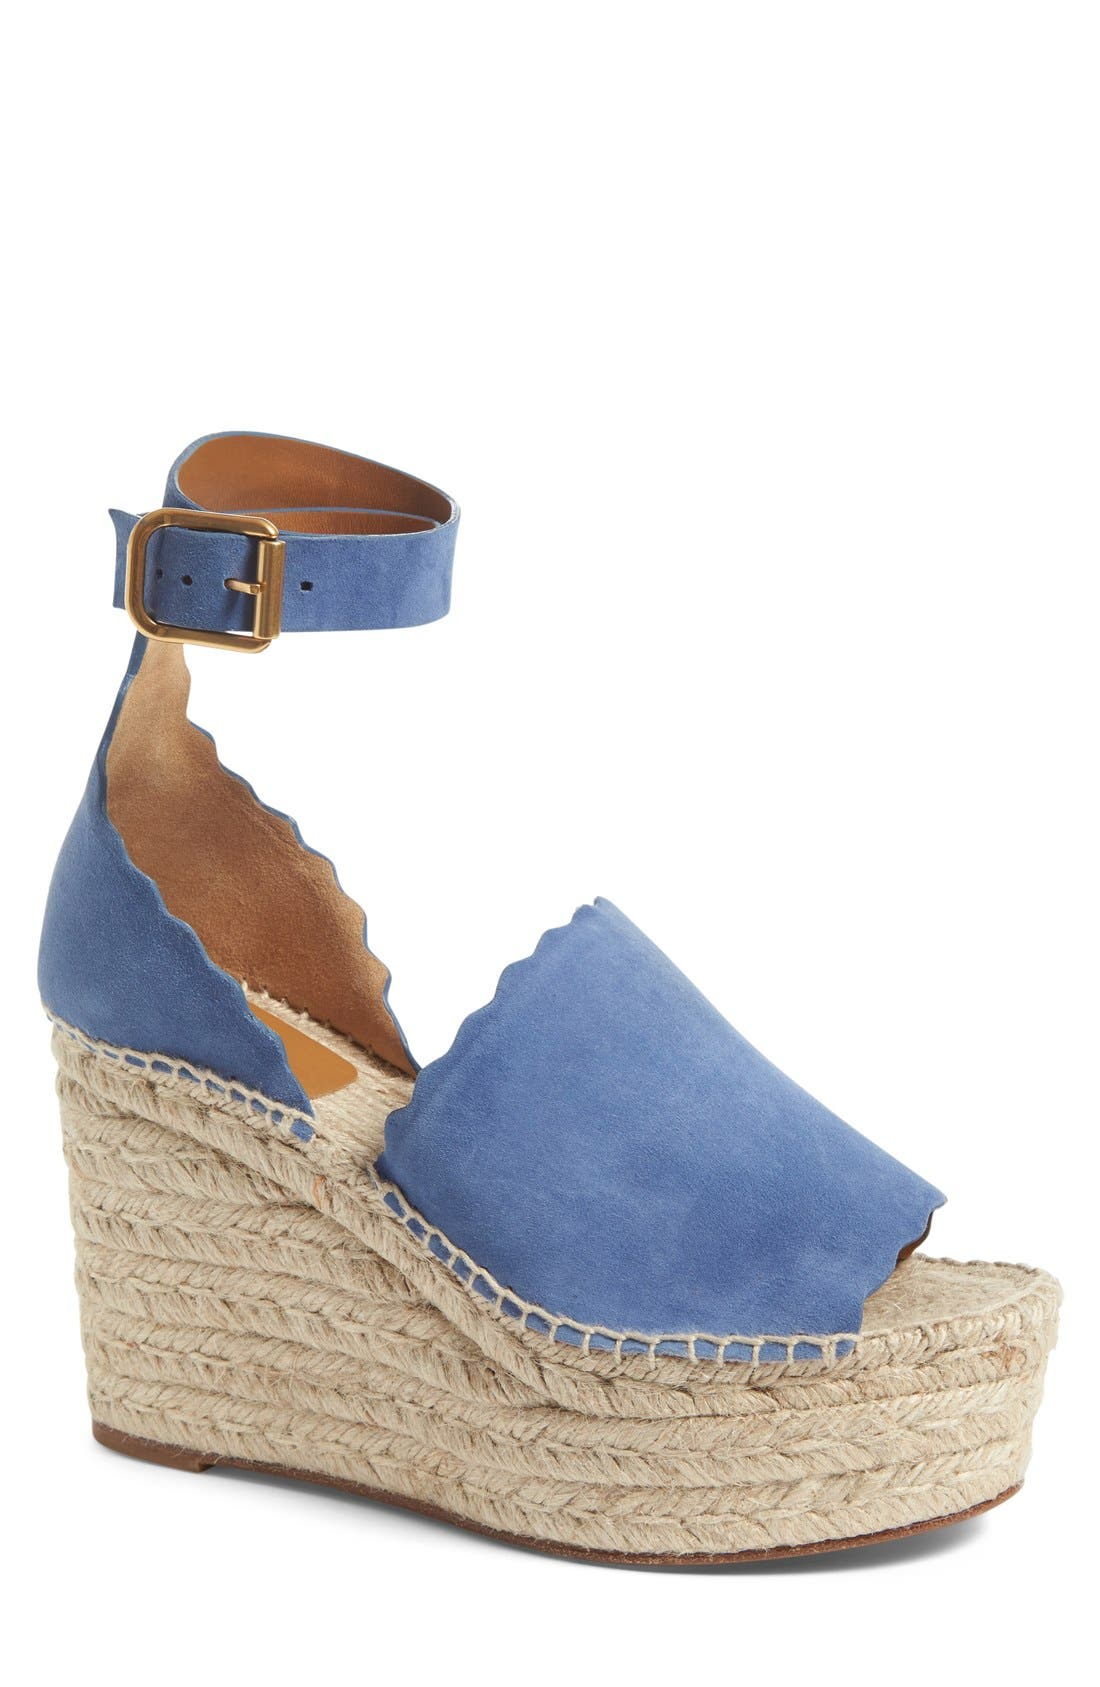 Lauren Espadrille Wedge Sandal,                             Main thumbnail 3, color,